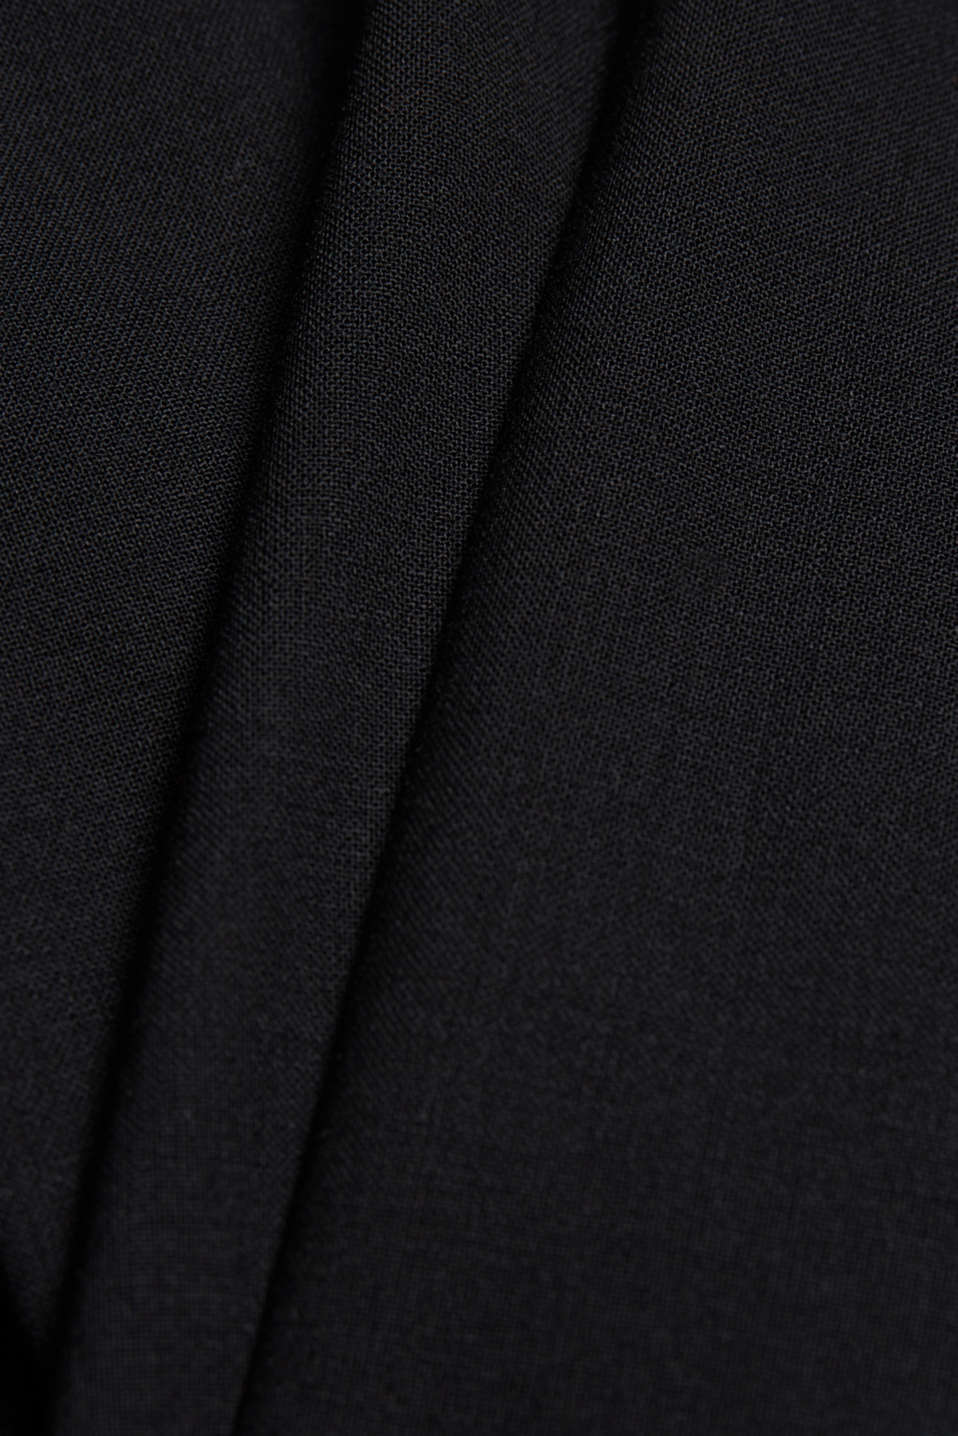 ACTIVE SUIT trousers made of blended wool, BLACK, detail image number 5